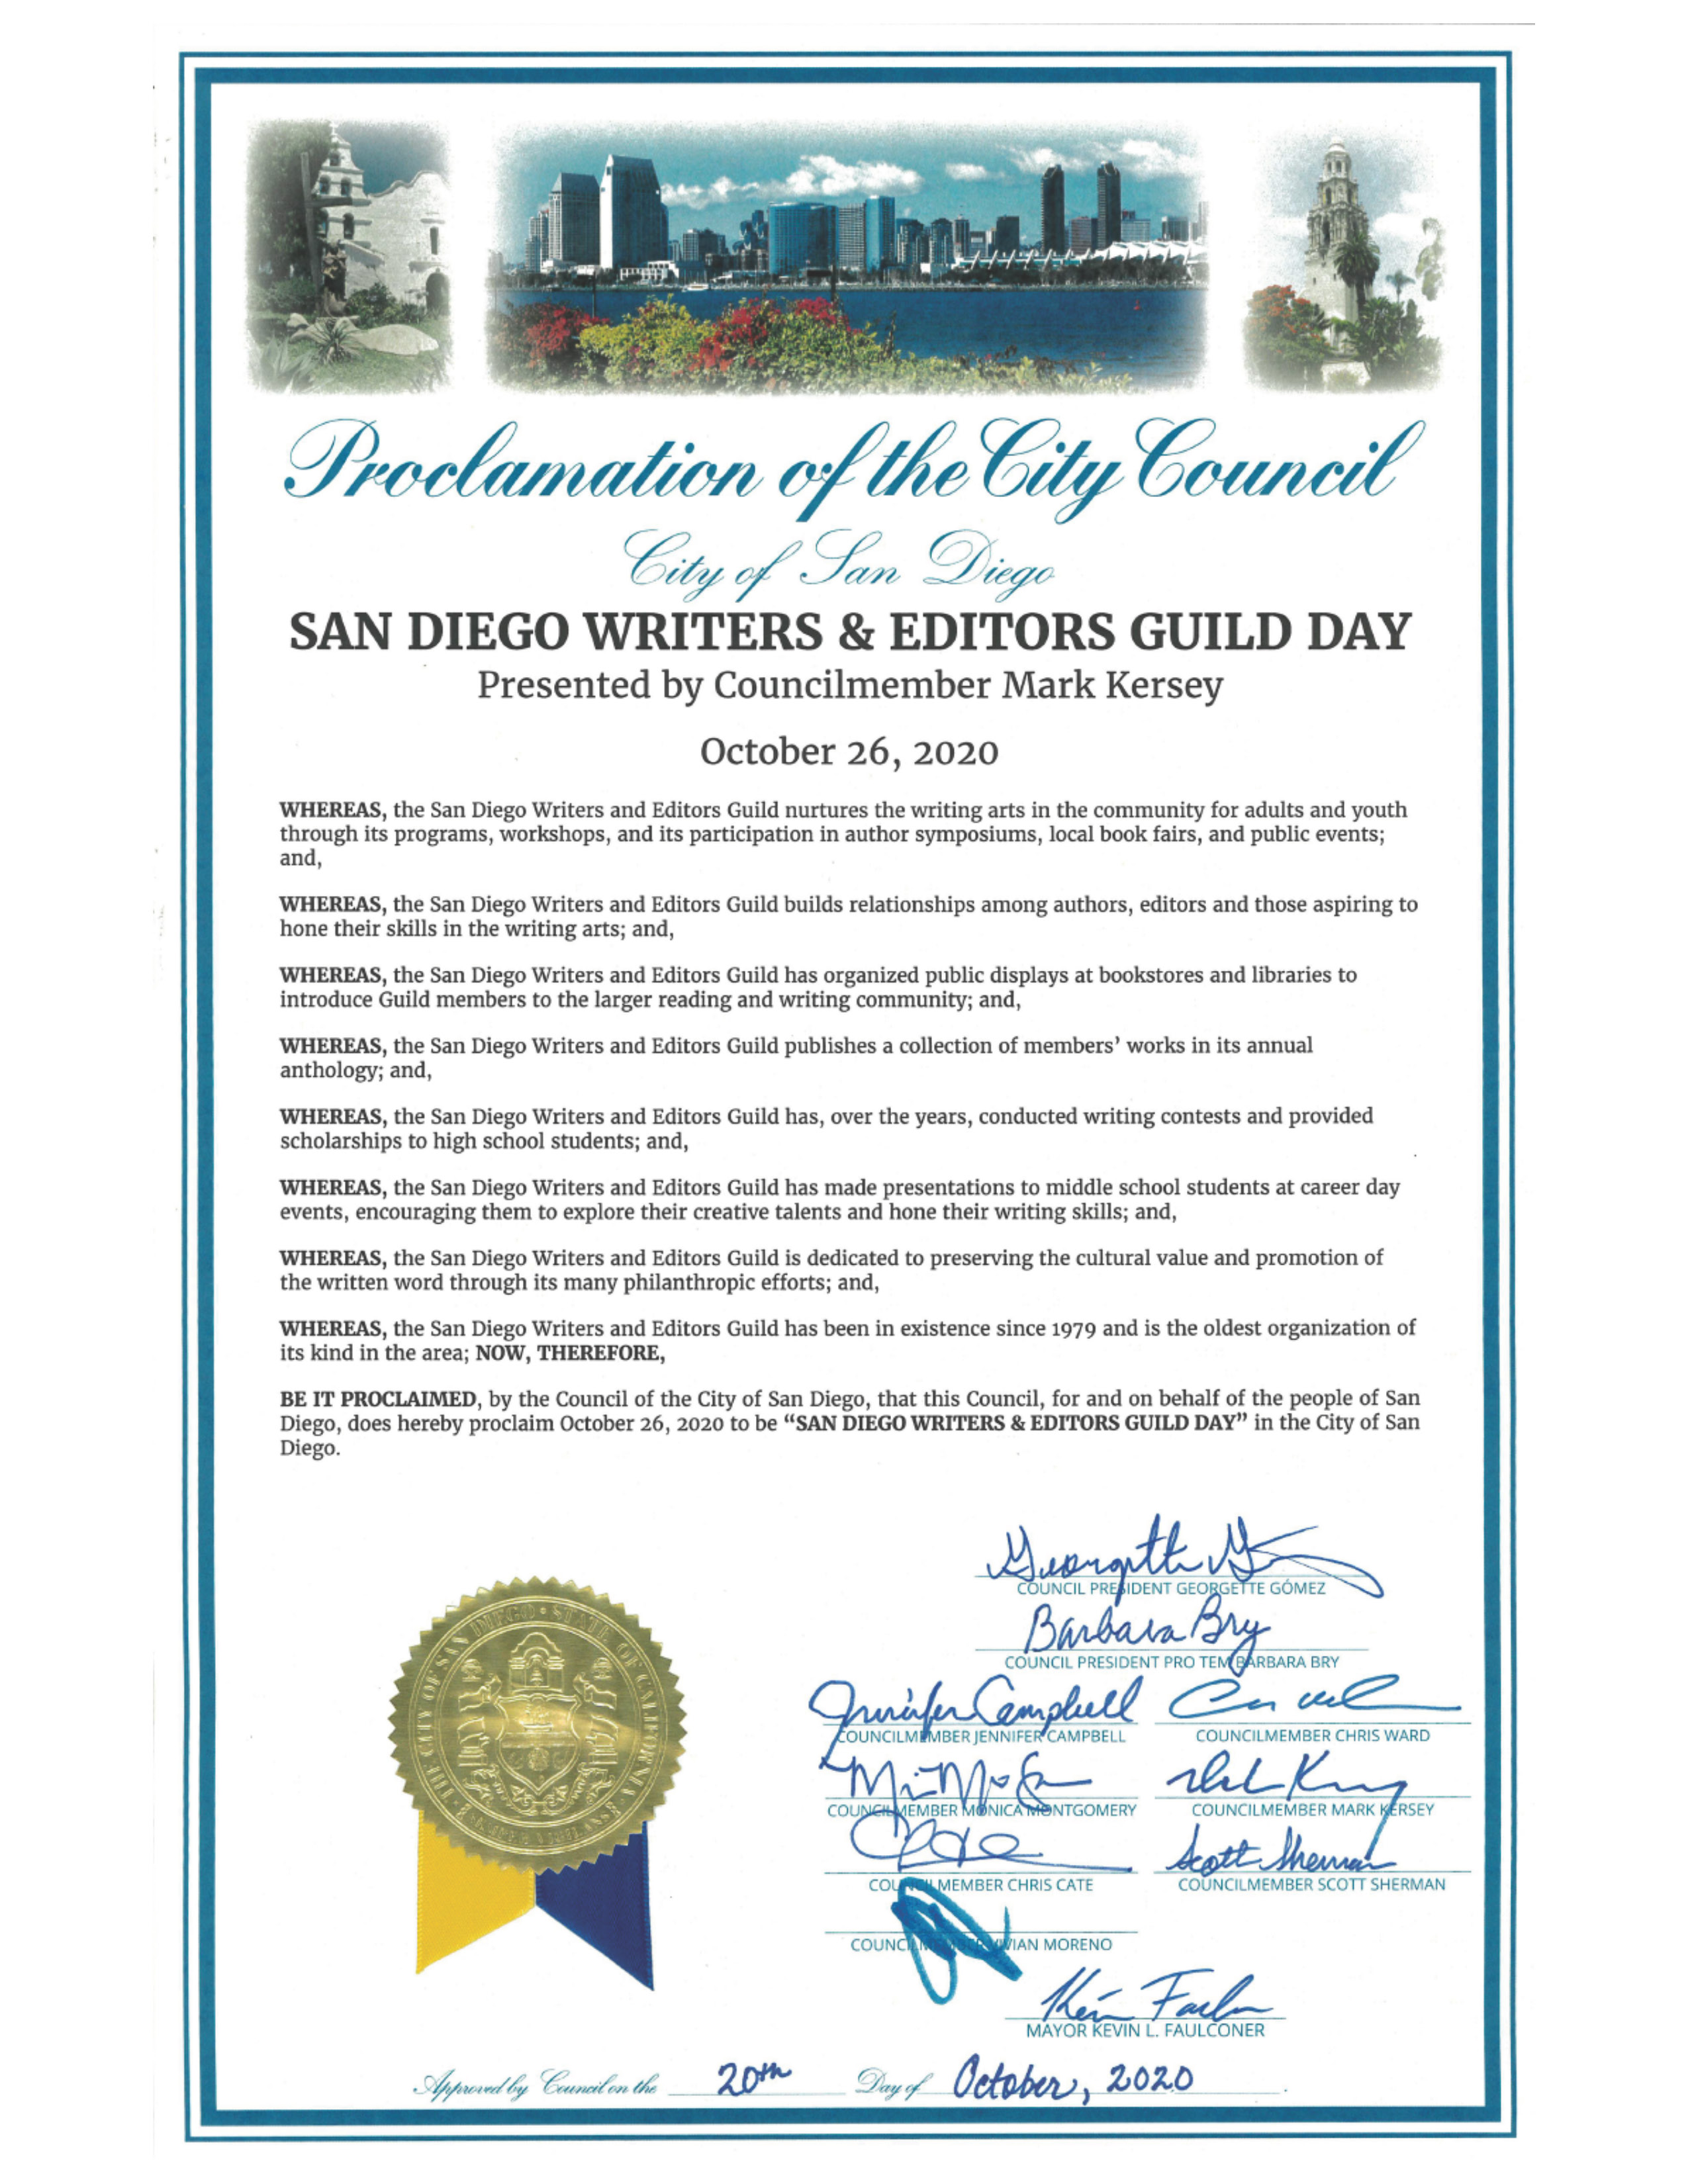 City Council Declares October 26 San Diego Writers and Editors Guild Day